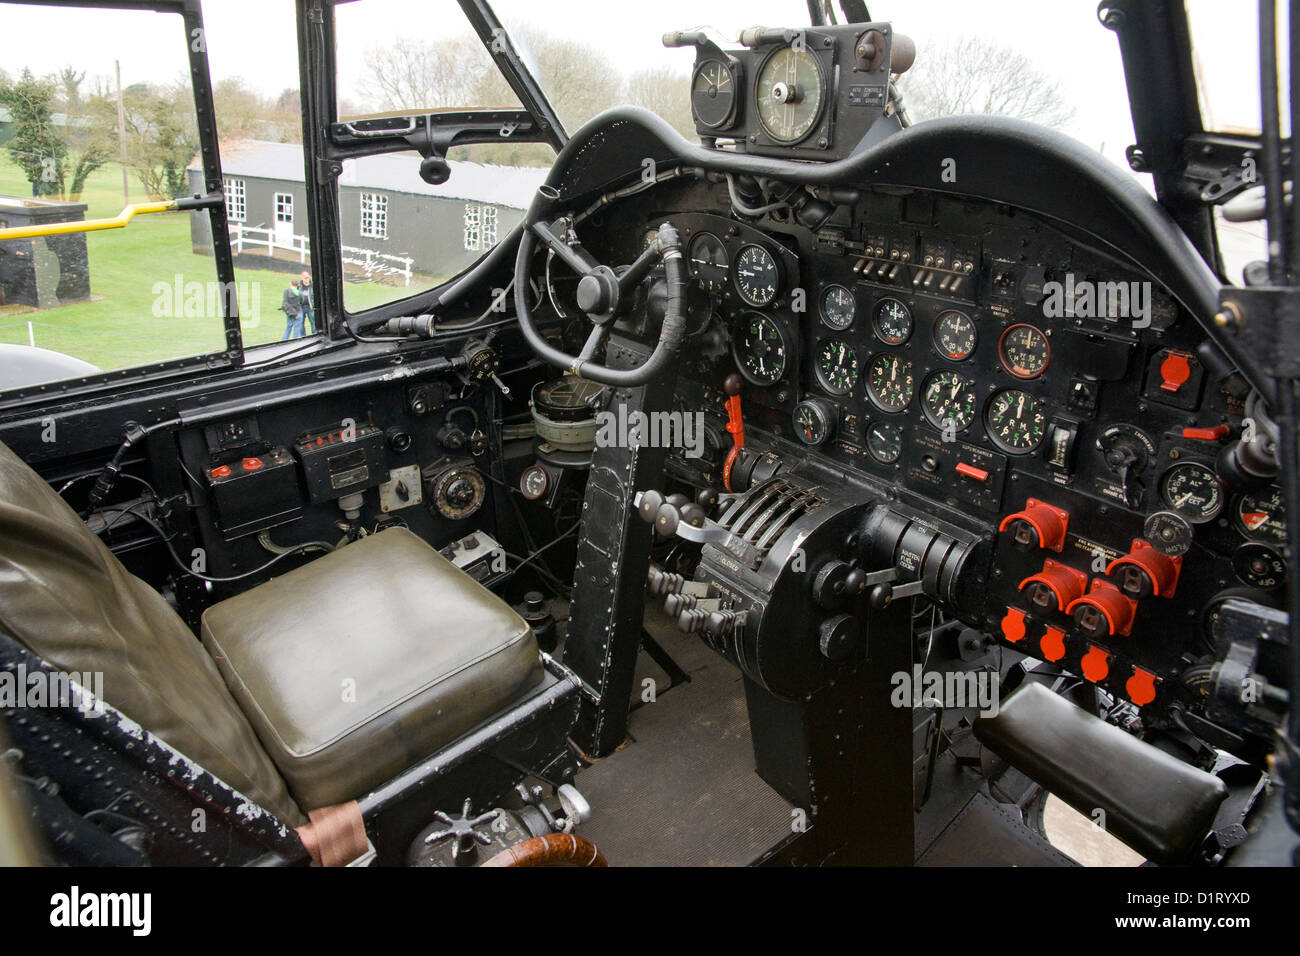 Avro Lancaster NX611 Bomber 'Just Jane' Cockpit at the Lincolnshire Aviation Heritage Centre East Kirkby - Stock Image